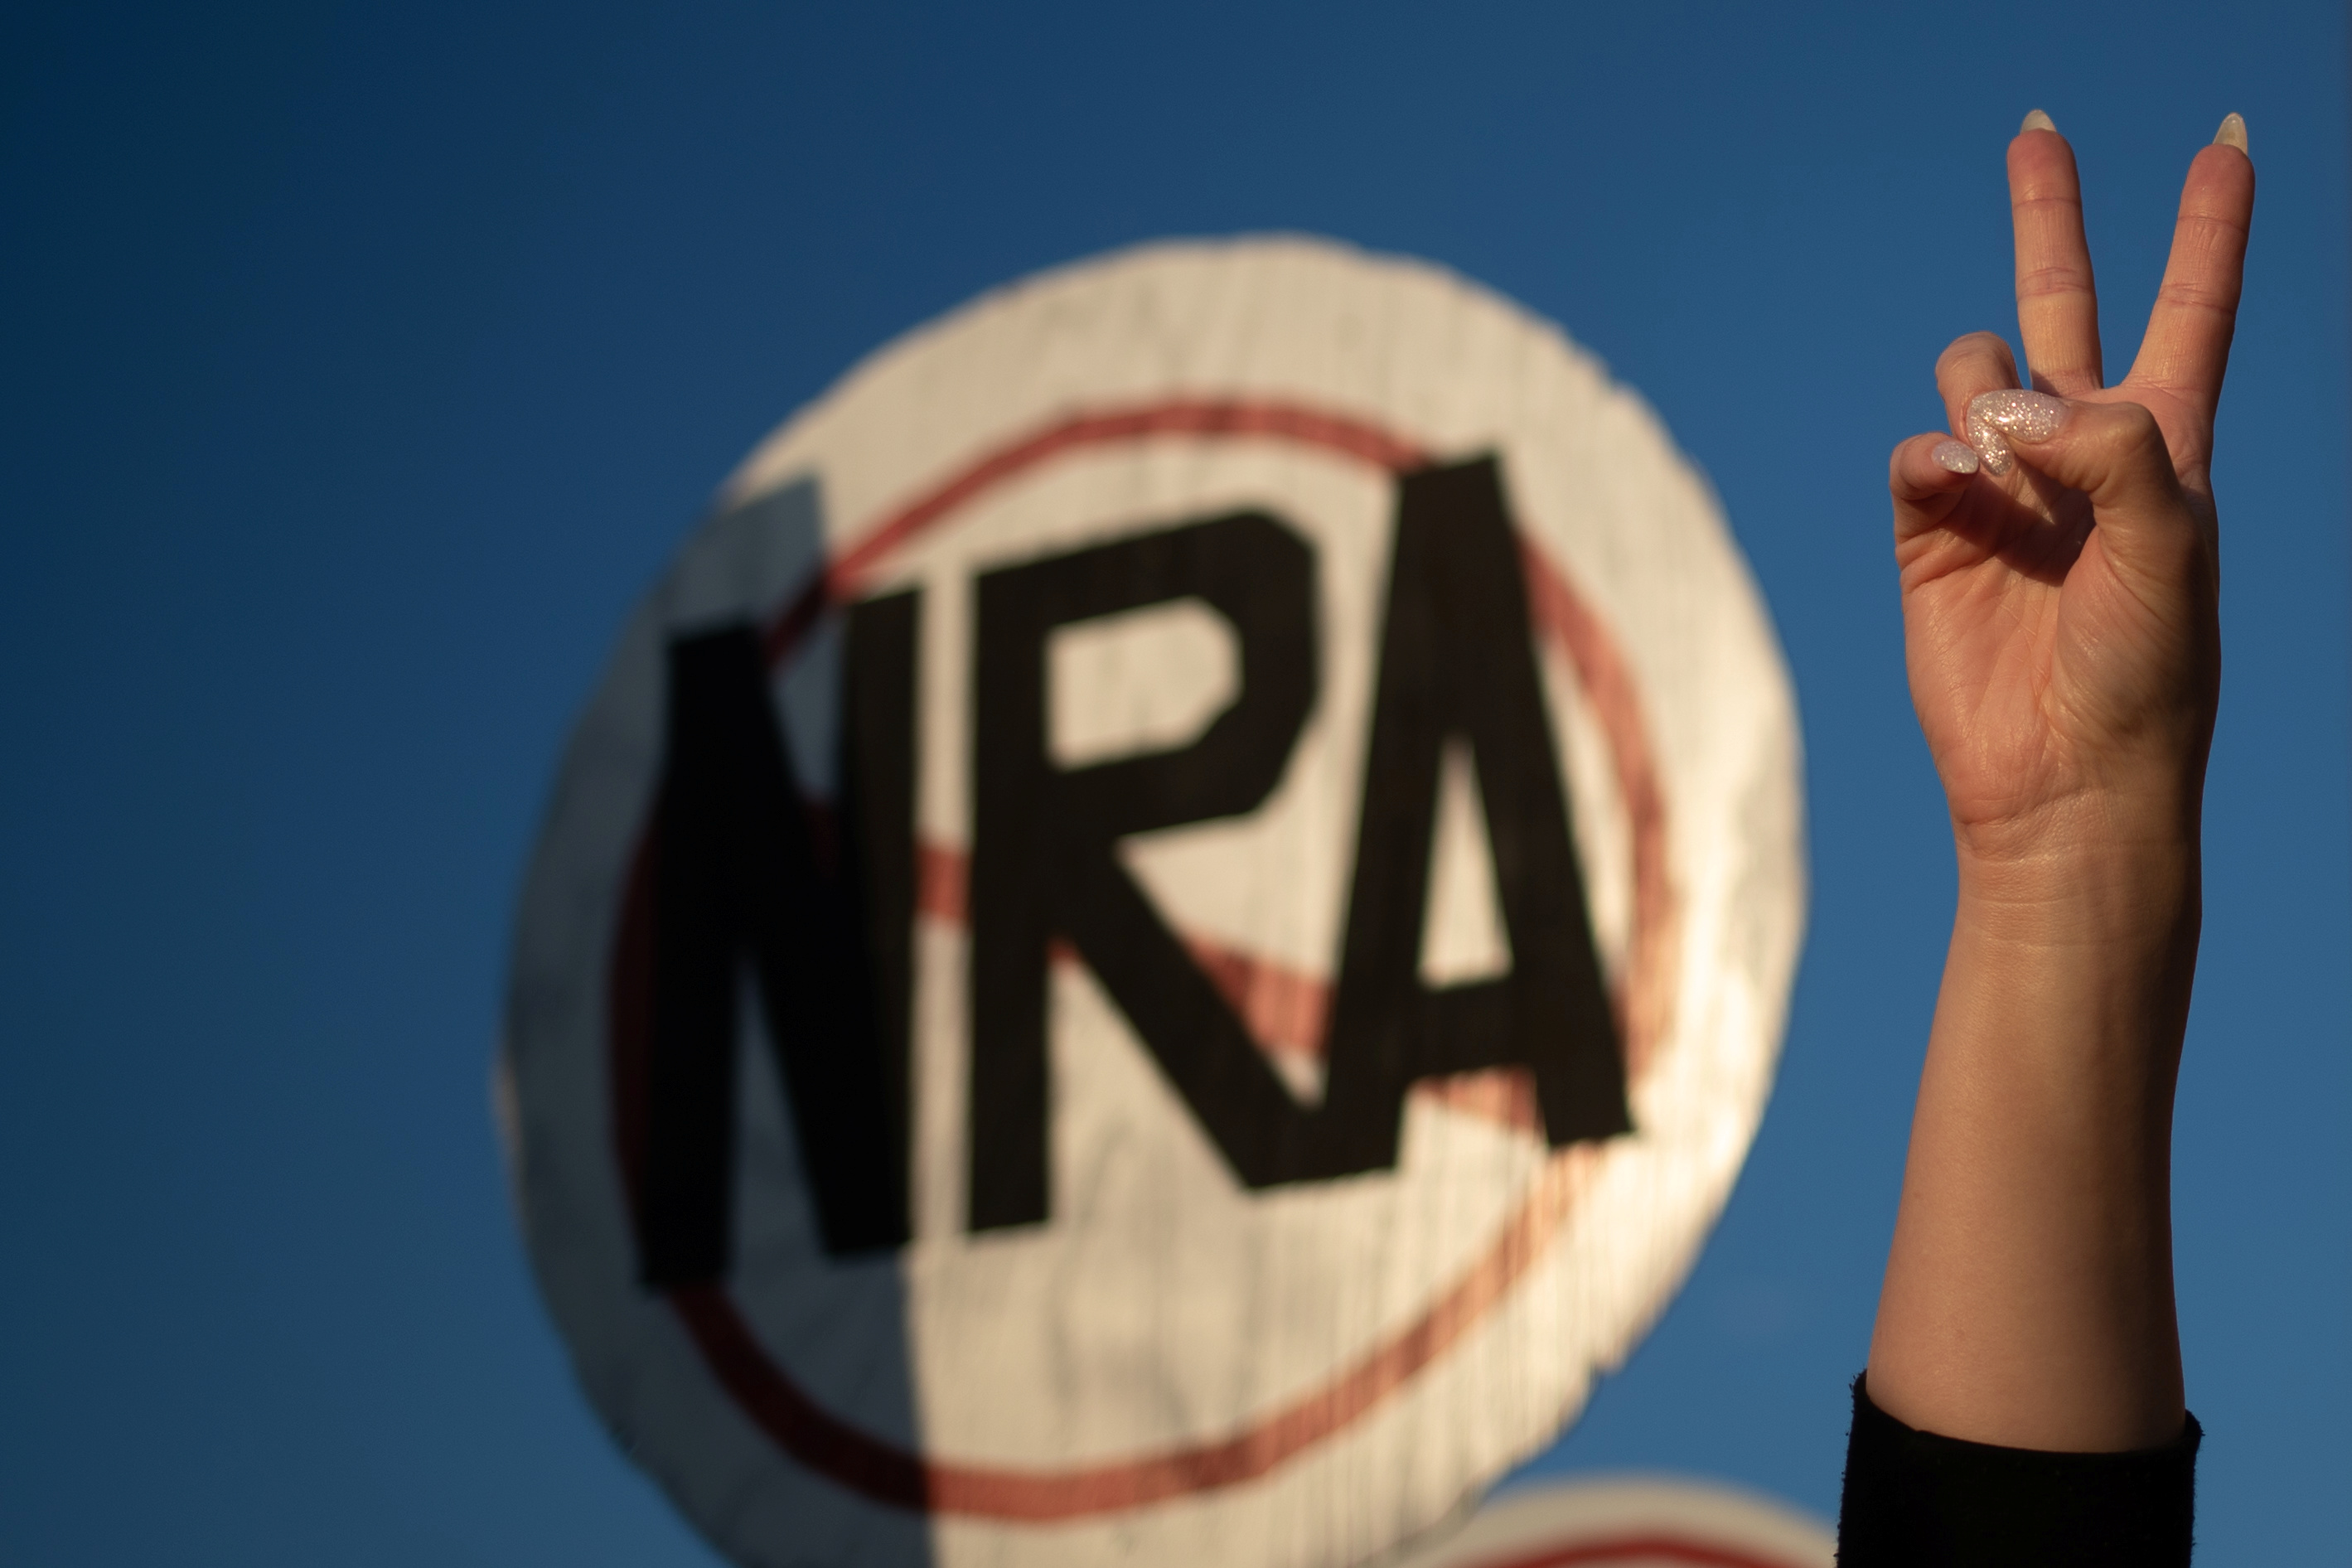 An activist takes part in protest march against NRA in Dallas, Texas